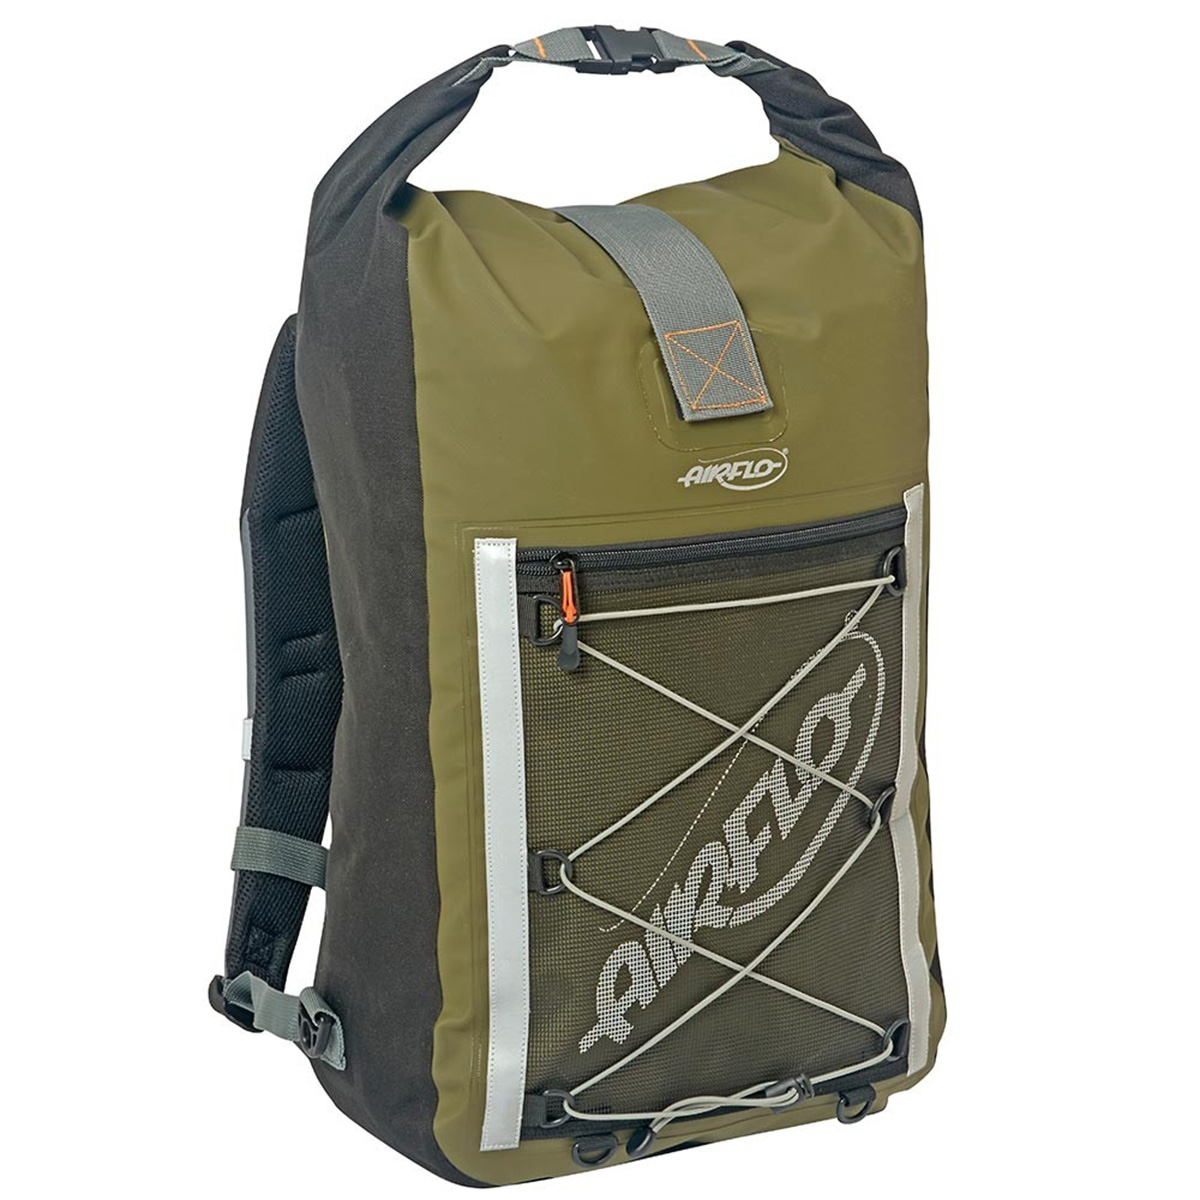 Airflo fly dri 30 litre roll top back pack fishing bags for Fly fishing luggage